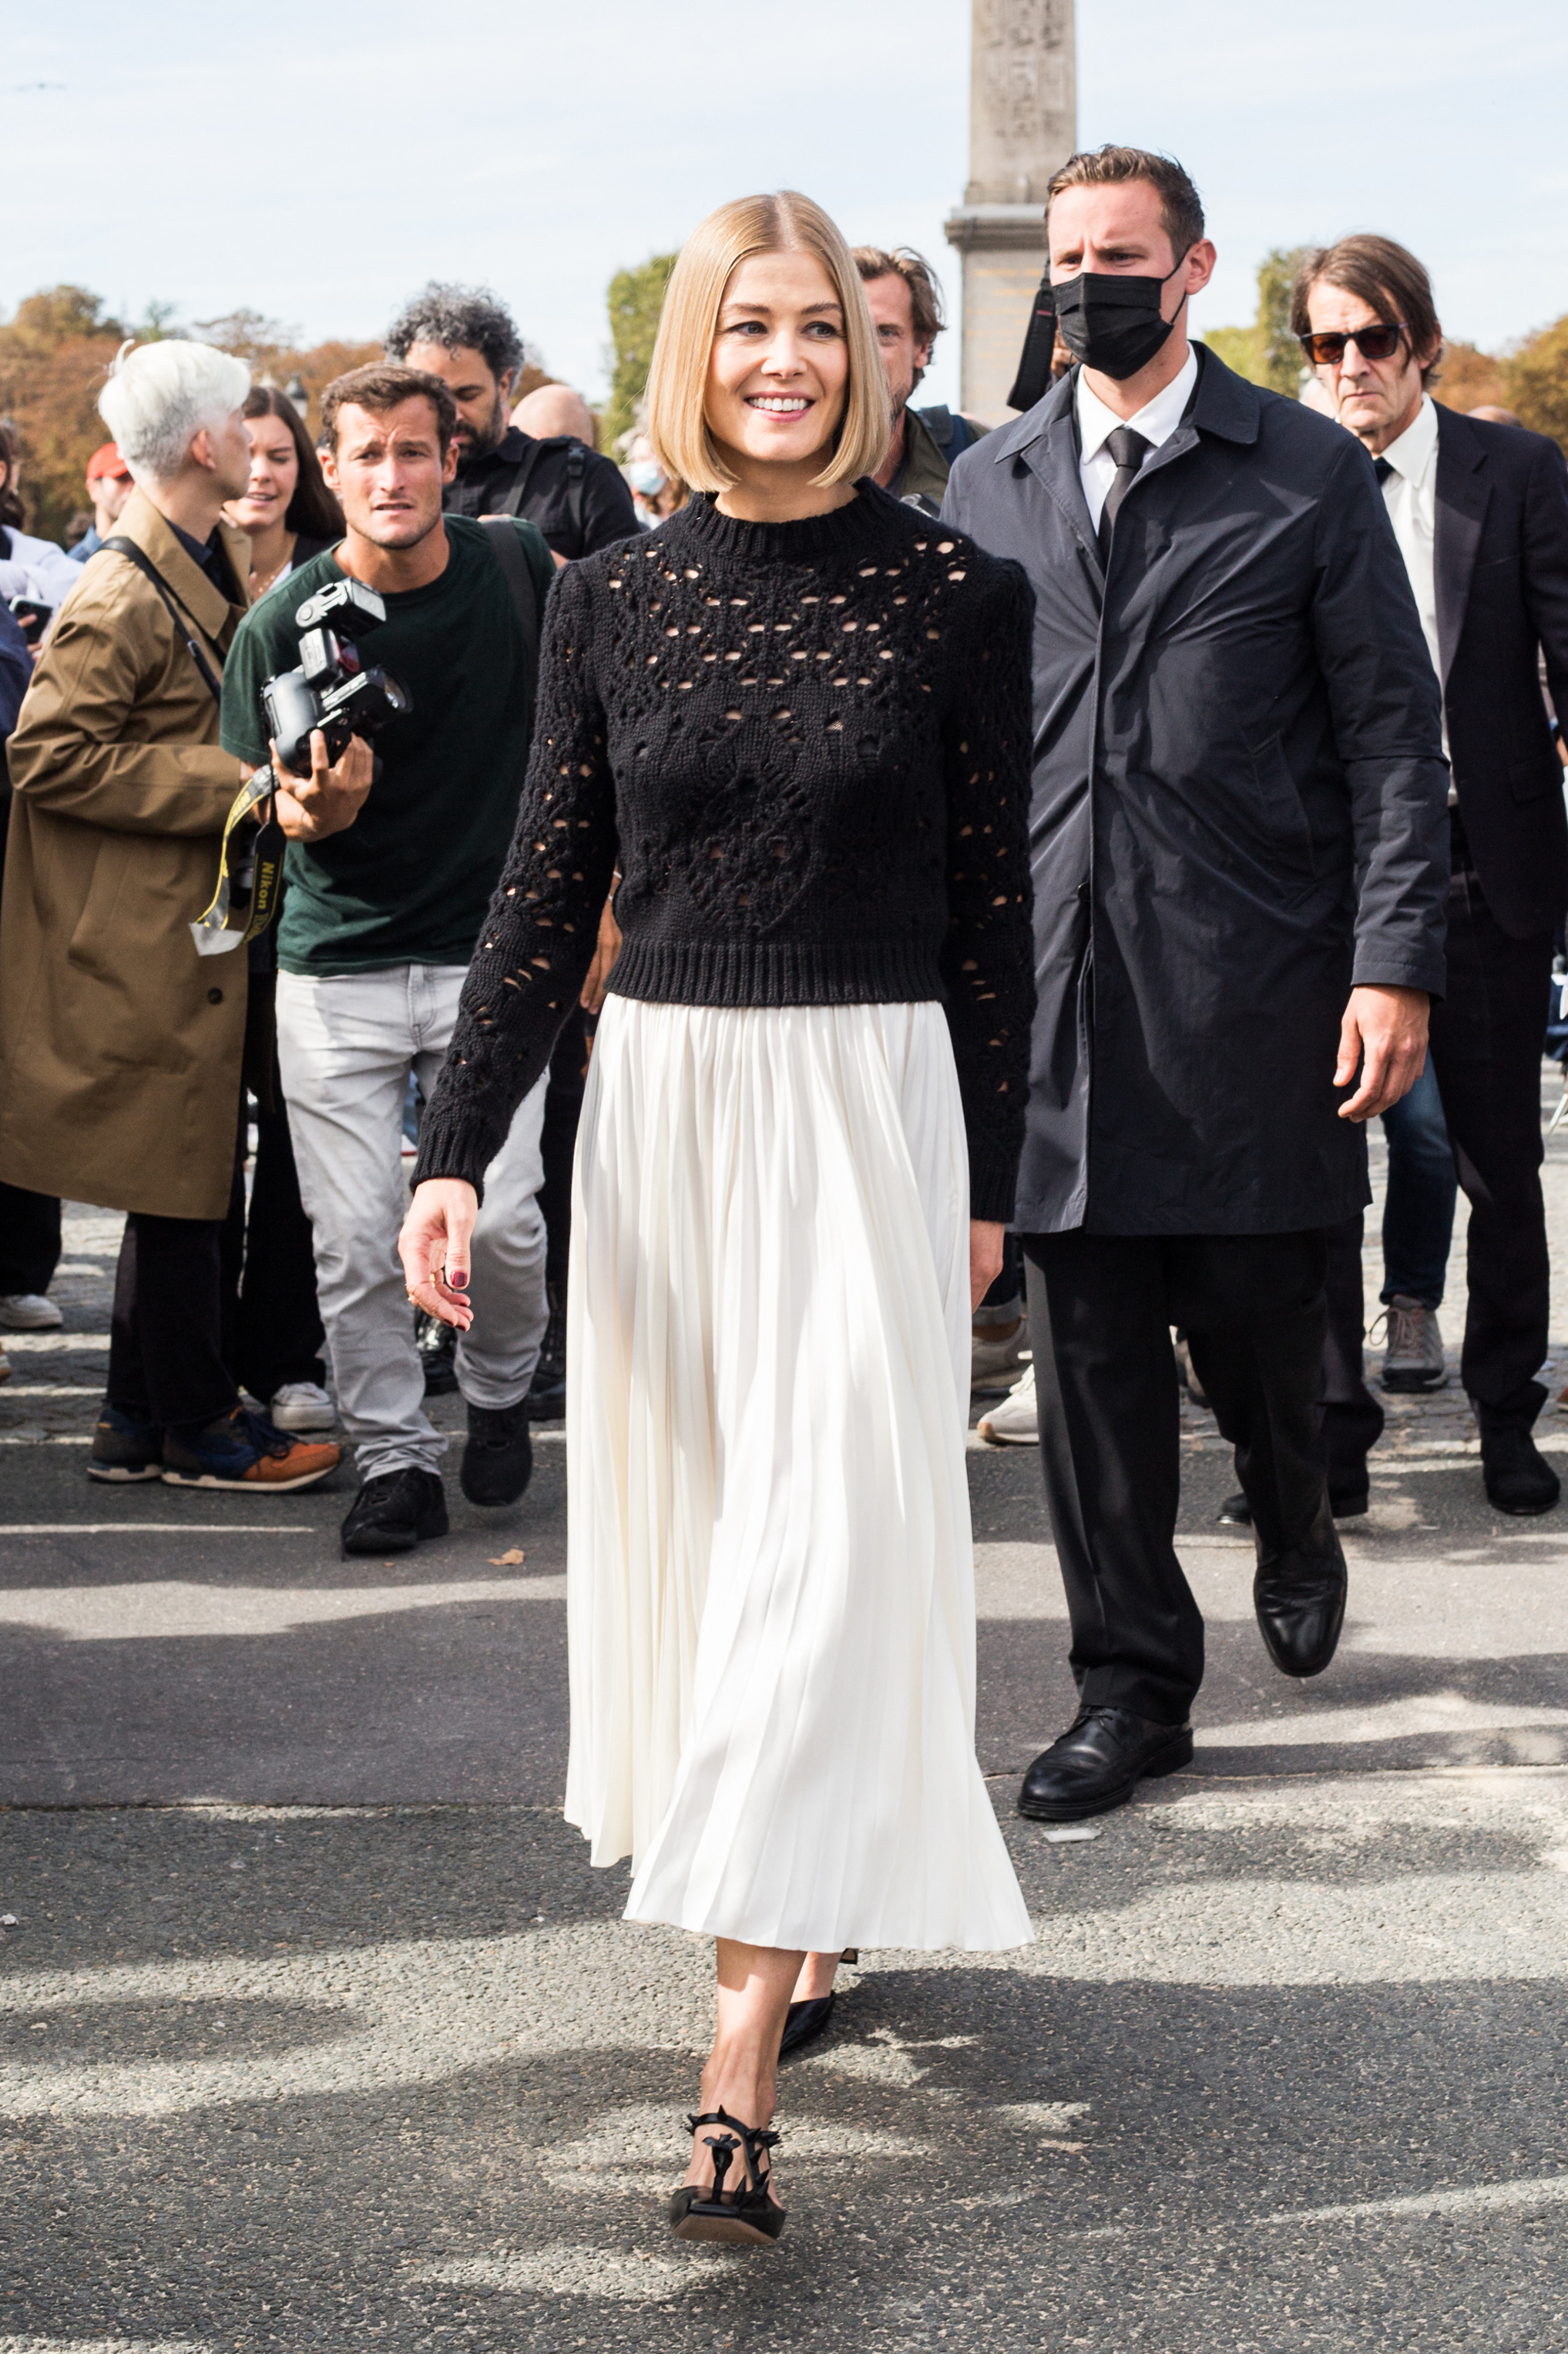 Rosamund Pike arriving at Dior fashion show during Paris Fashion Week on September 28, 2021 in Paris, France. Photo by Nasser Berzane/ABACAPRESS.COMPictured: Rosamund Pike Ref: SPL5261317 280921 NON-EXCLUSIVE Picture by: Nasser Berzane/AbacaPress / SplashNews.com Splash News and Pictures USA: +1 310-525-5808 London: +44 (0)20 8126 1009 Berlin: +49 175 3764 166 photodesk@splashnews.com United Arab Emirates Rights, Australia Rights, Bahrain Rights, Canada Rights, Greece Rights, India Rights, Israel Rights, South Korea Rights, New Zealand Rights, Qatar Rights, Saudi Arabia Rights, Singapore Rights, Thailand Rights, Taiwan Rights, United Kingdom Rights, United States of America Rights